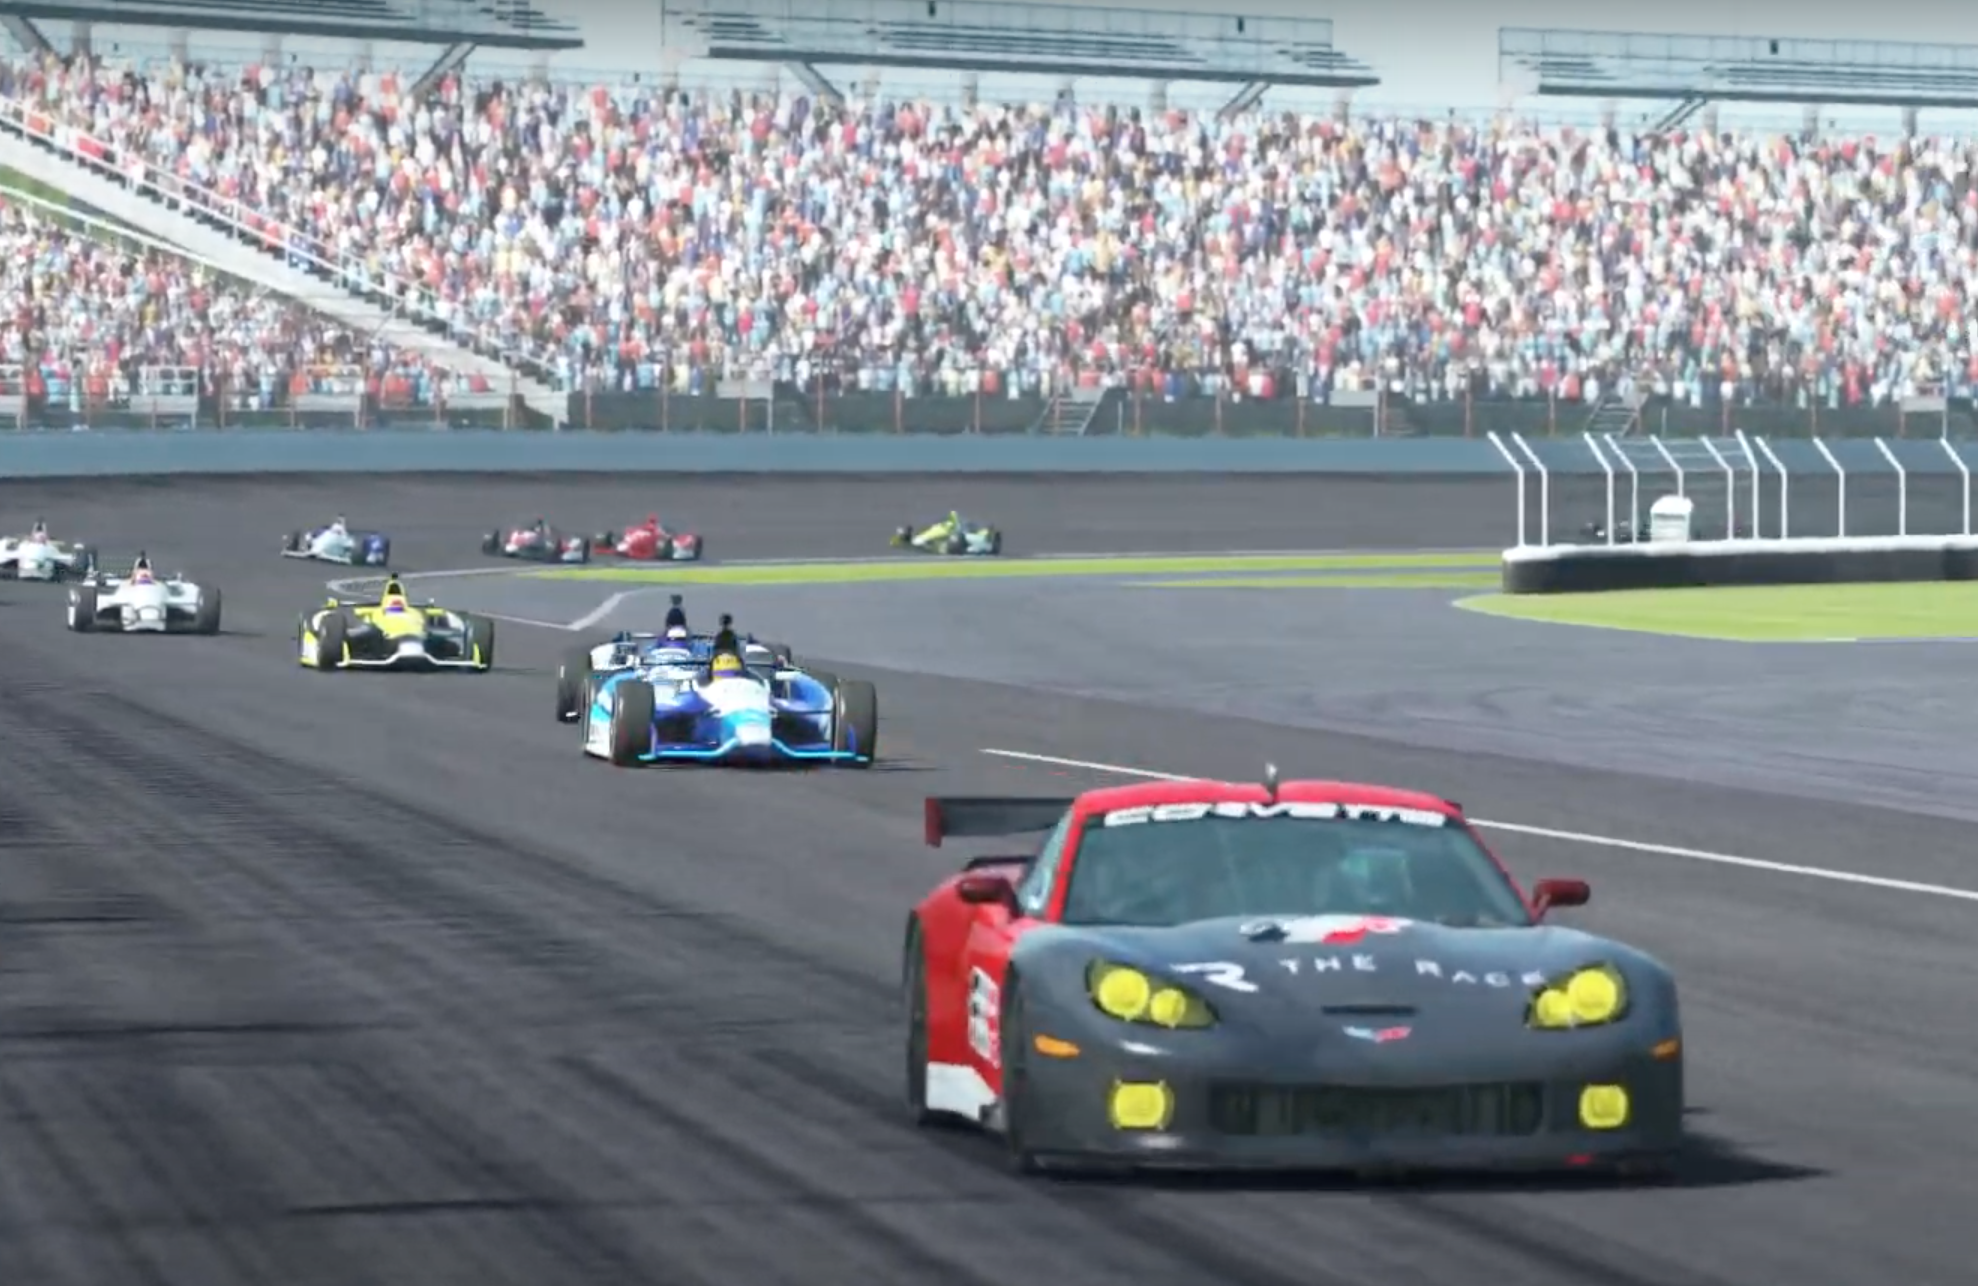 Indypro R6 Safety Car Leads De Waal Pic 1